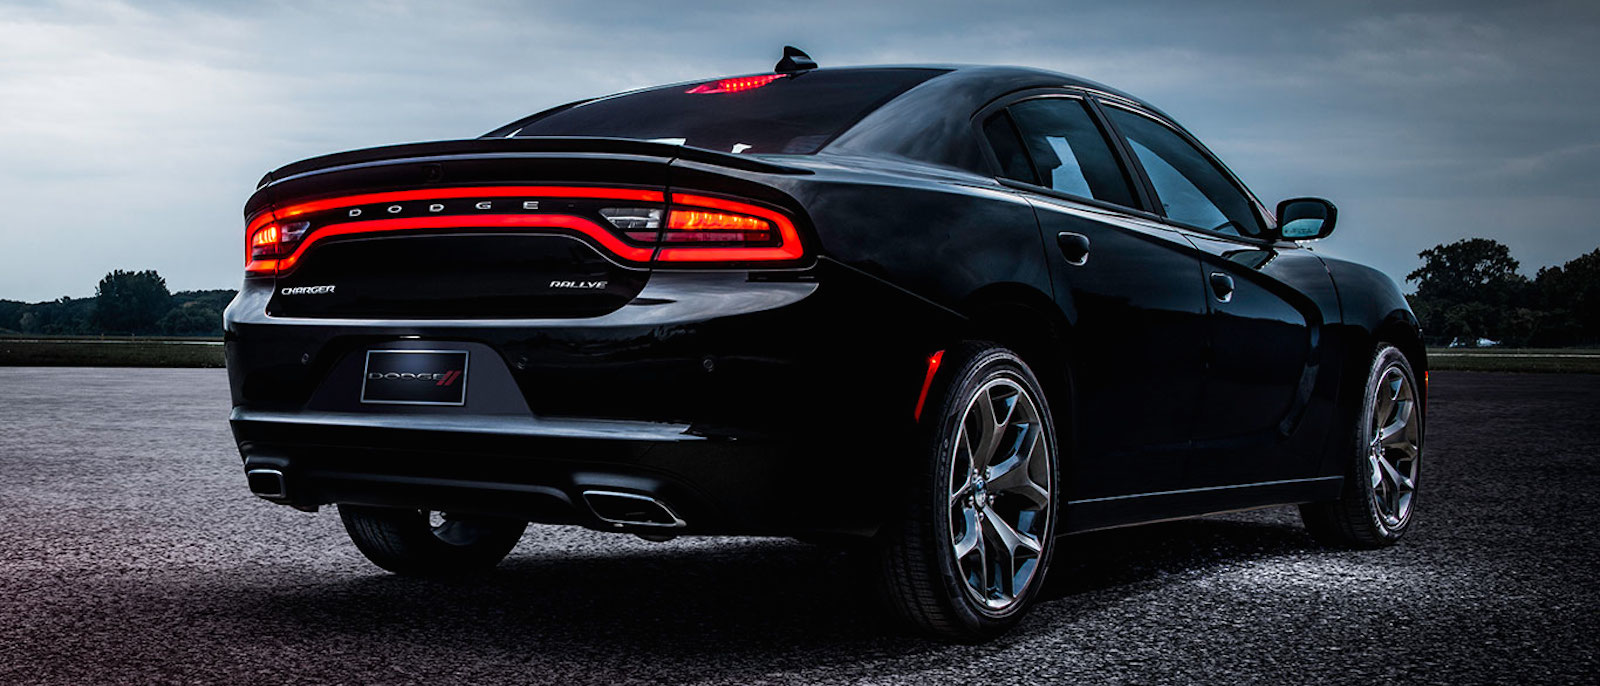 2015 Charger in black